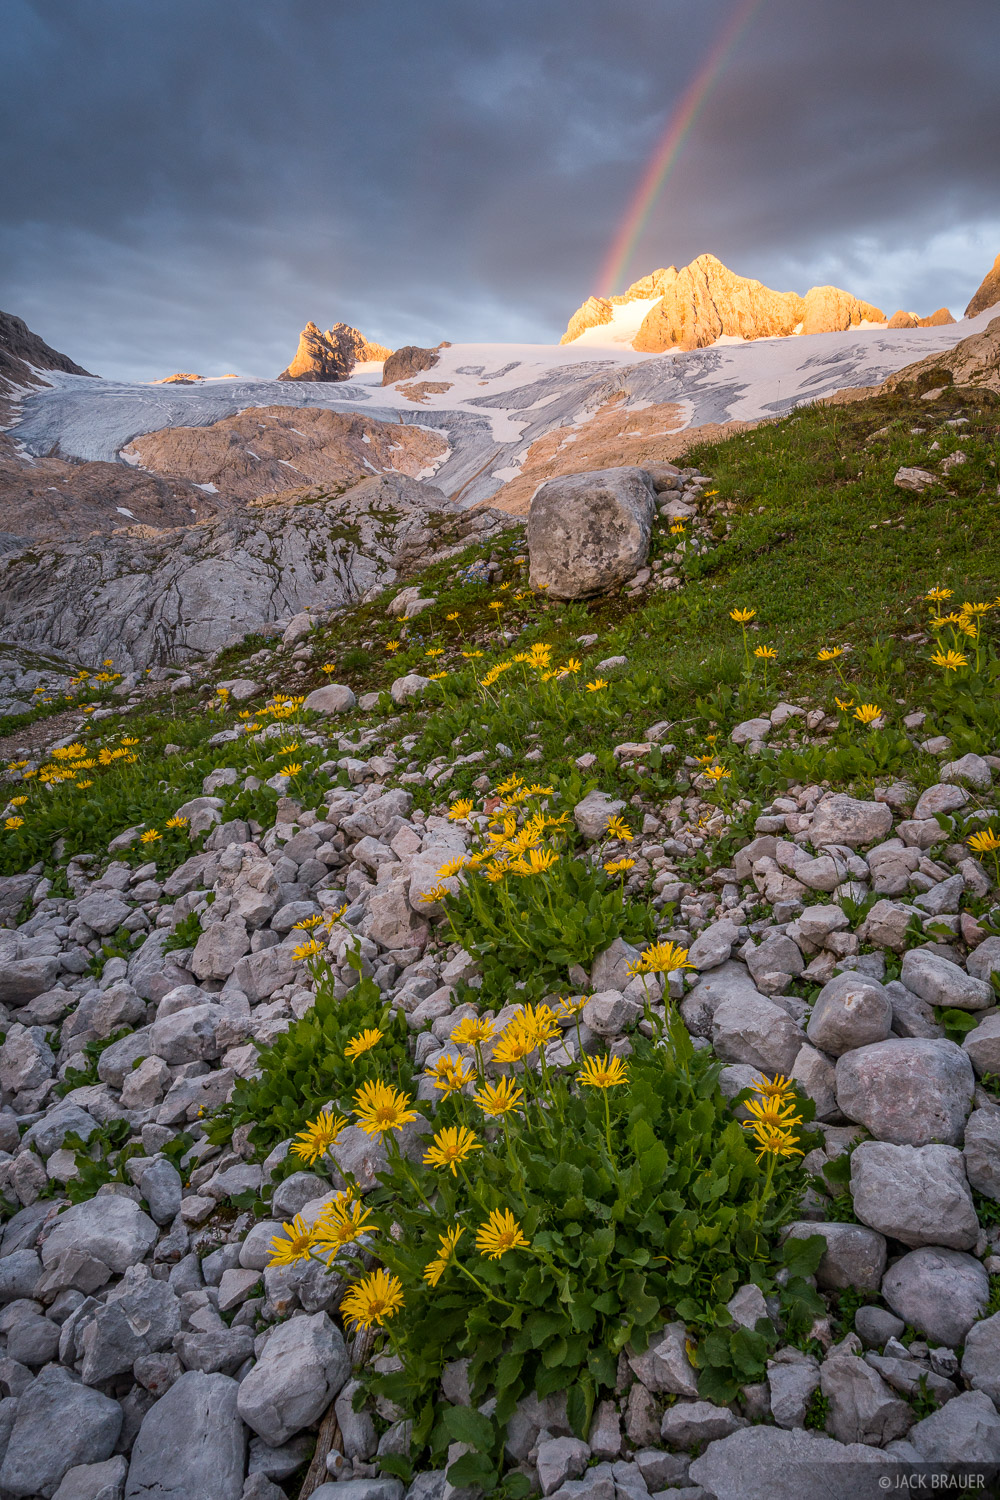 Austria, Dachstein, Hallstätter Gletscher, wildflowers, sunrise, glacier, rainbow, photo